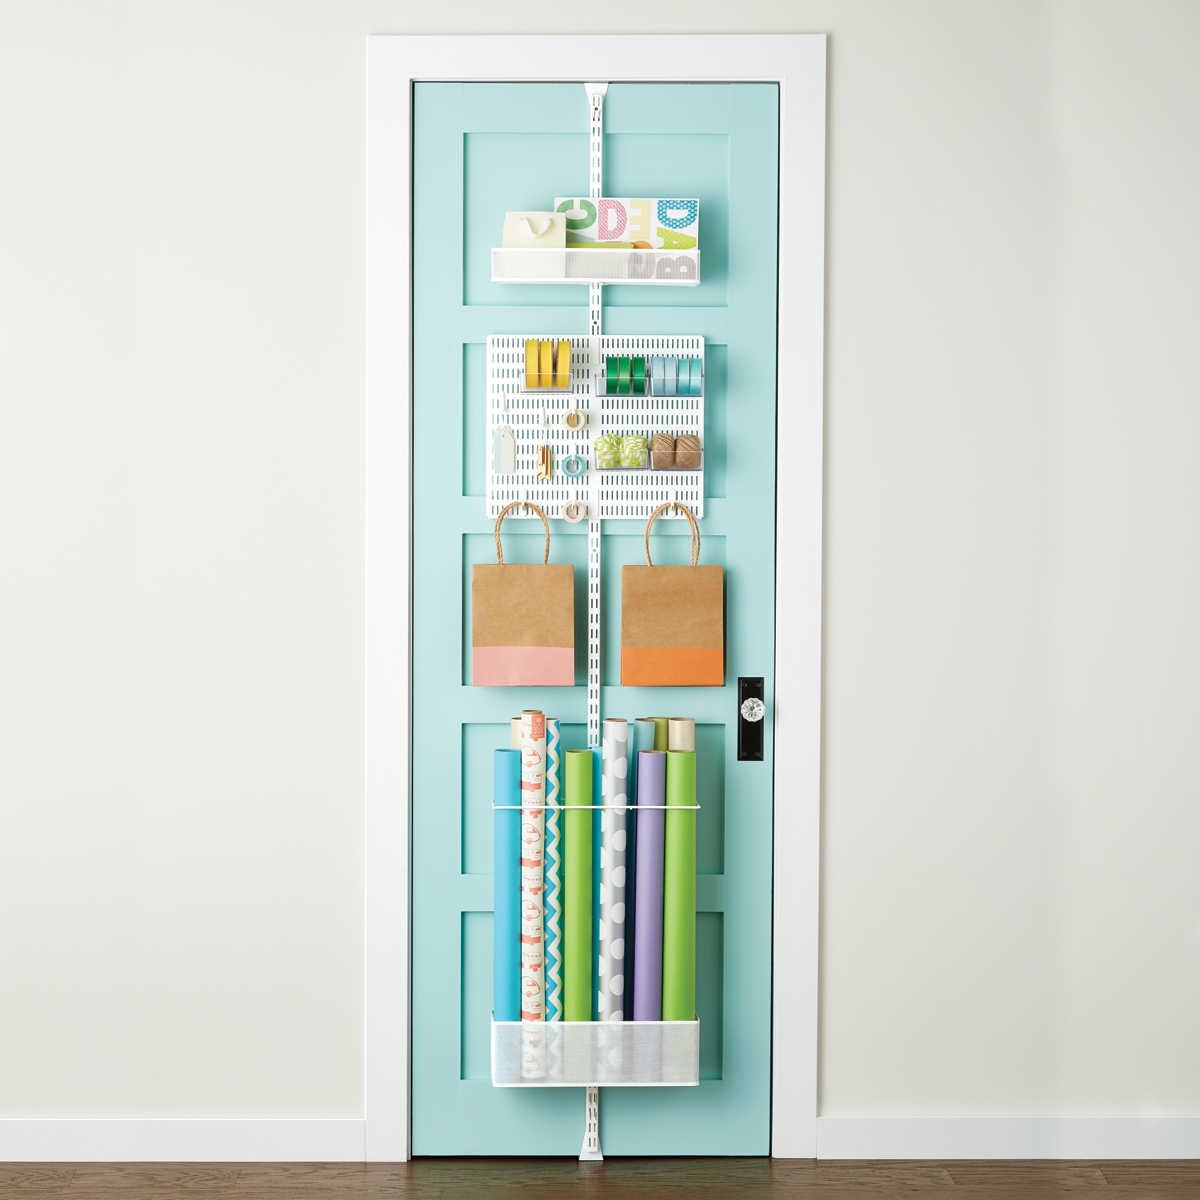 Best Kitchen Gallery: White Elfa Utility Gift Wrap Door Wall Rack The Container Store of Container Store Home  on rachelxblog.com